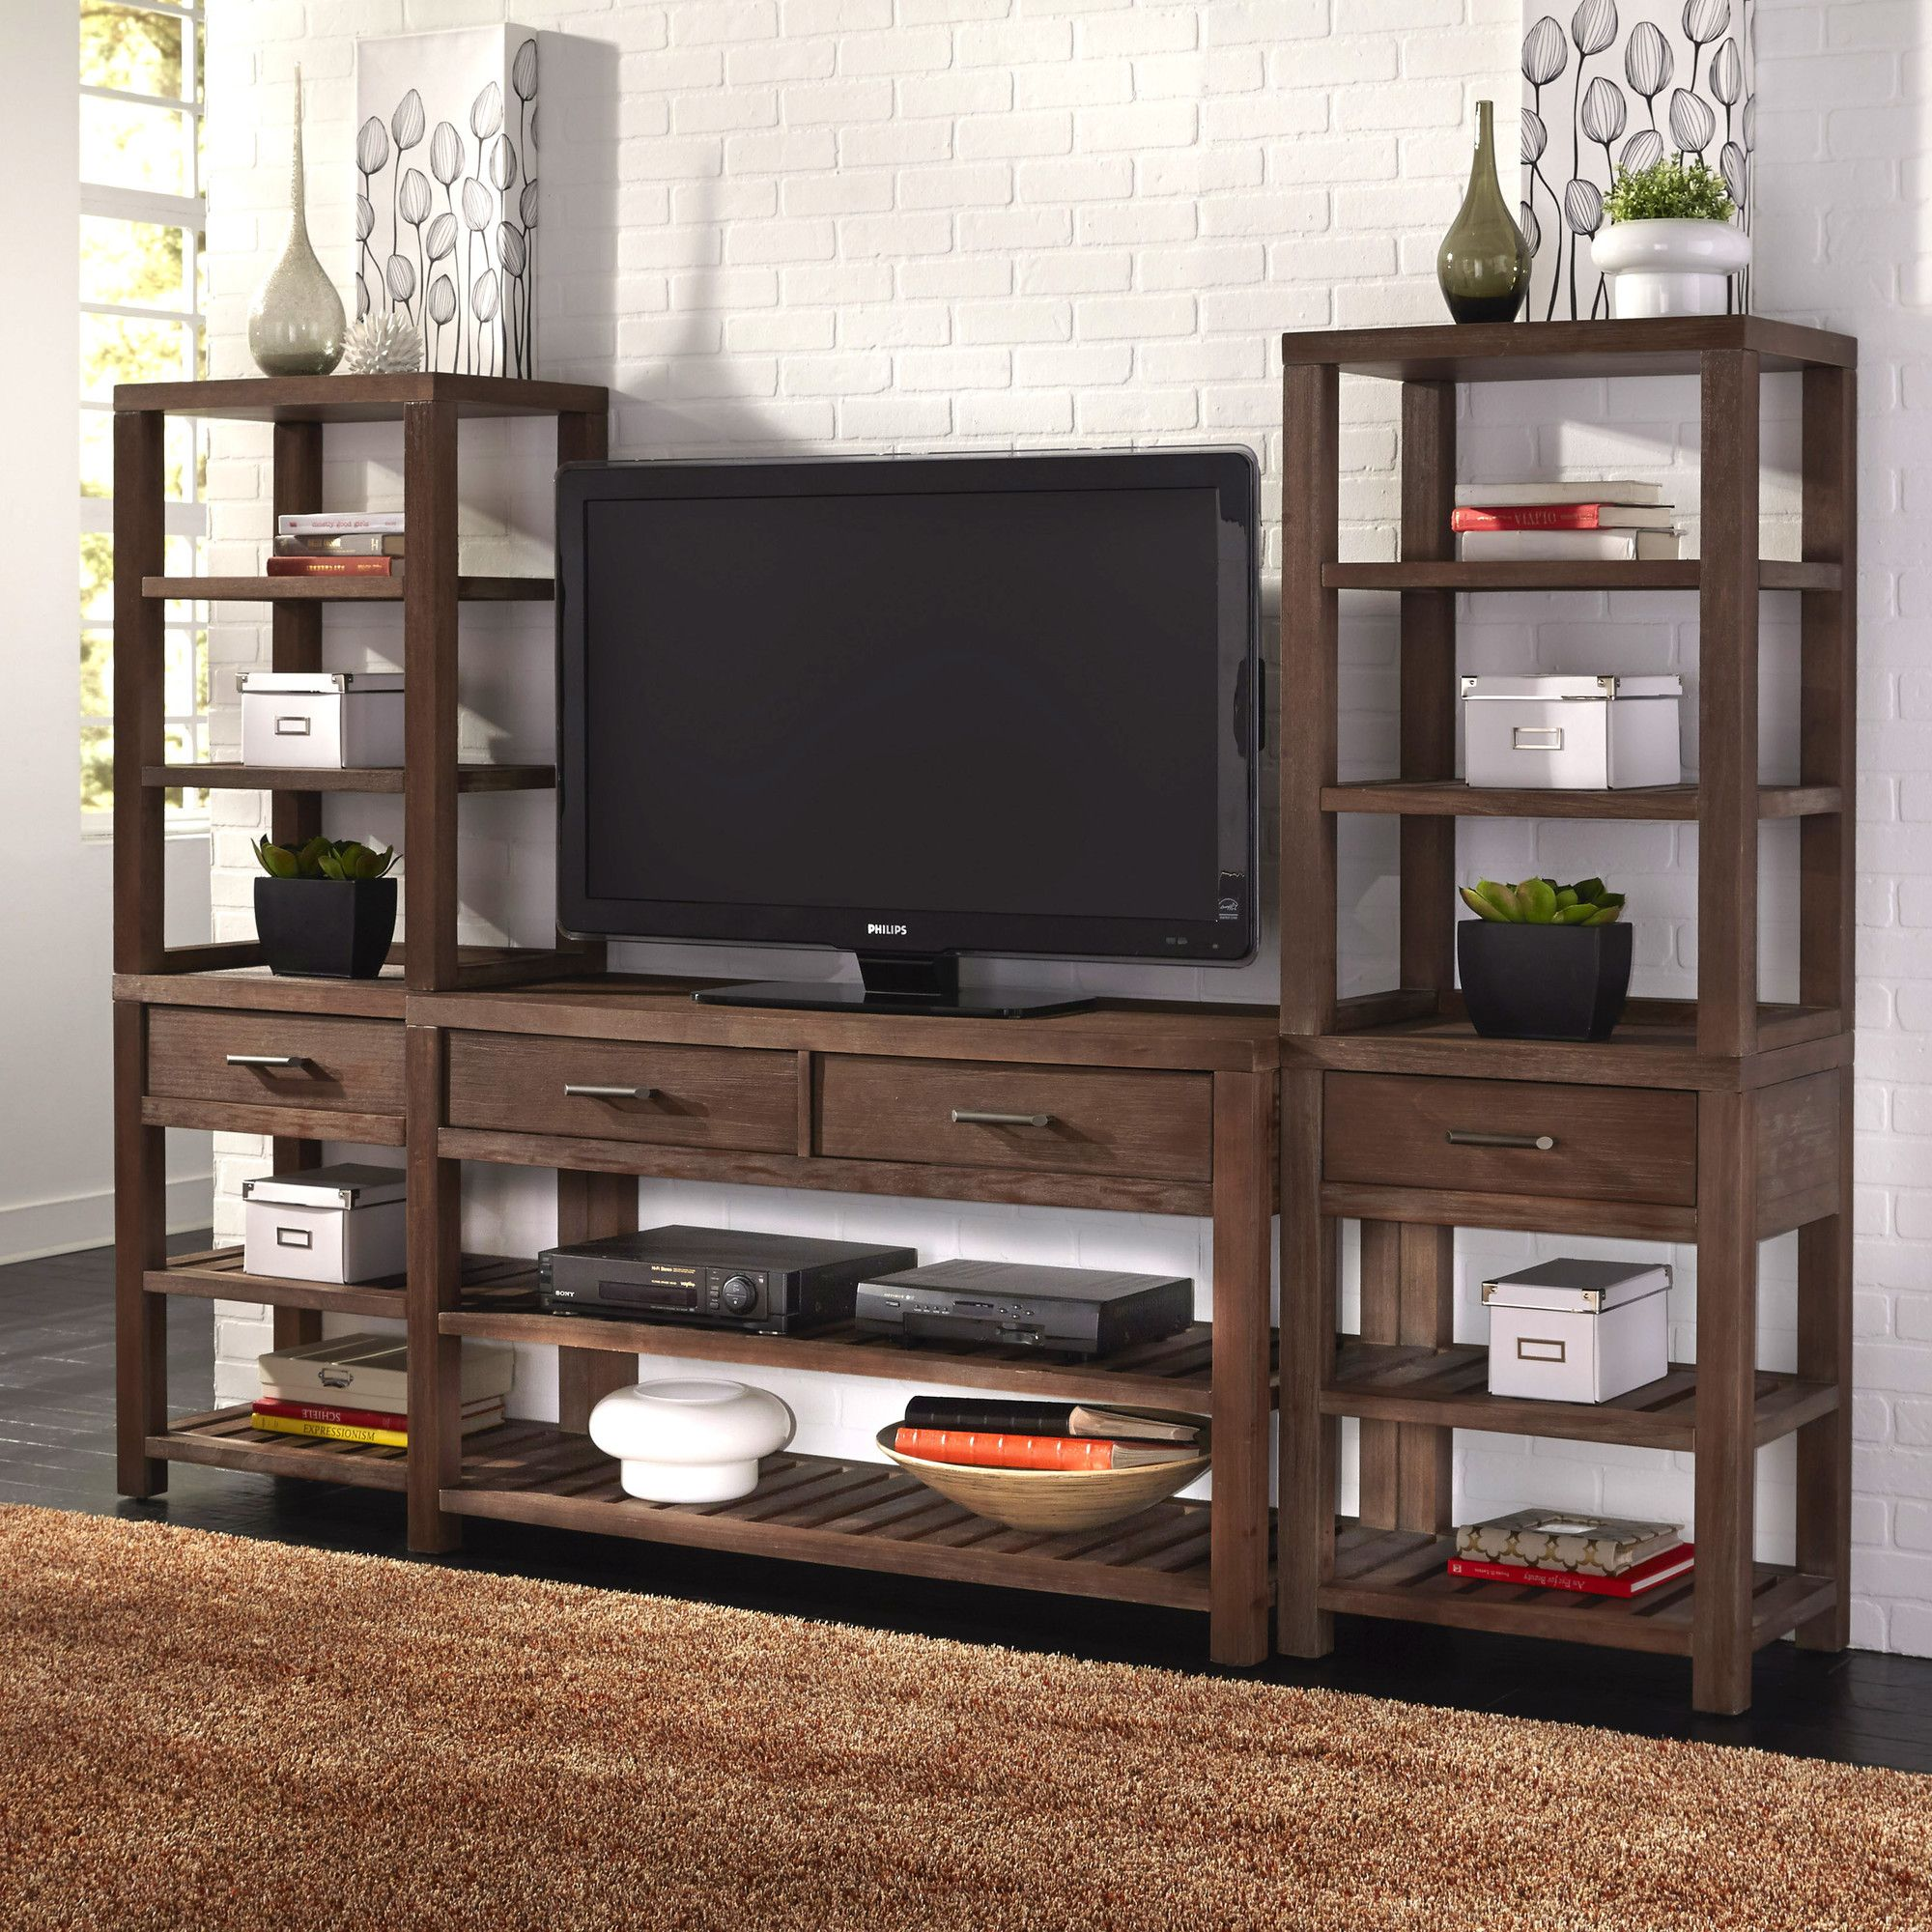 Diy Tv Stand Ideas For Your Weekend Project Build Your Own